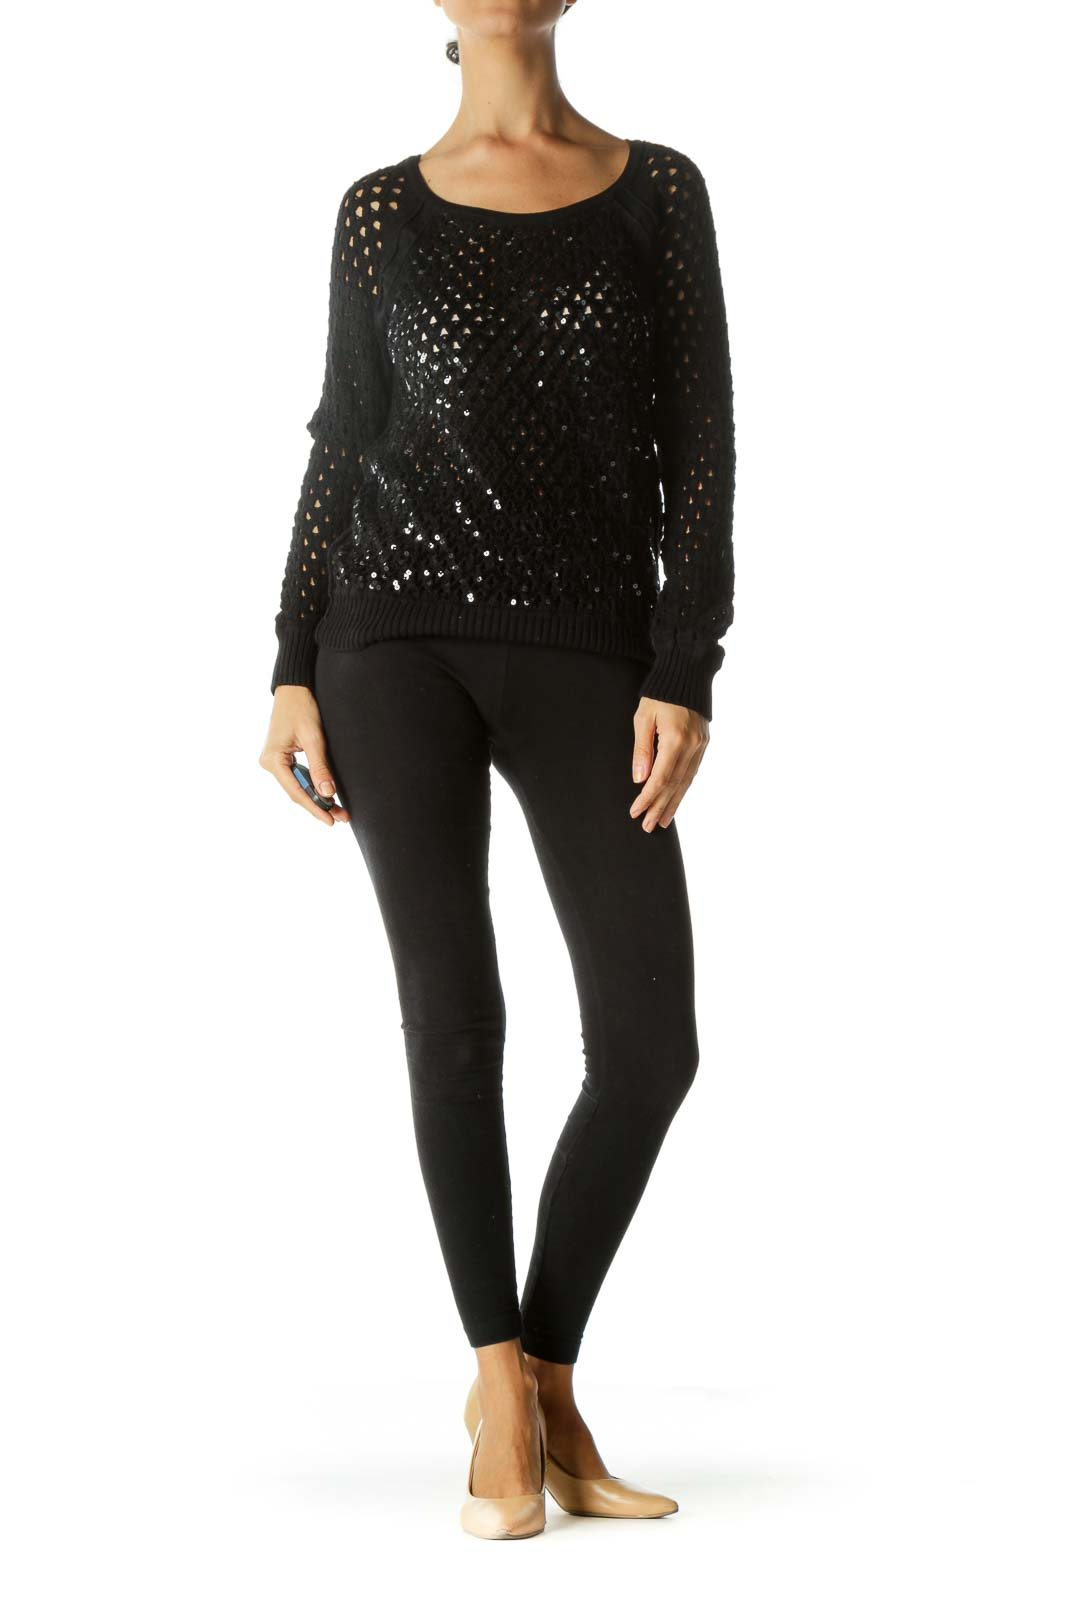 Black Sequined Knit See-Through Petite Soft Sweater